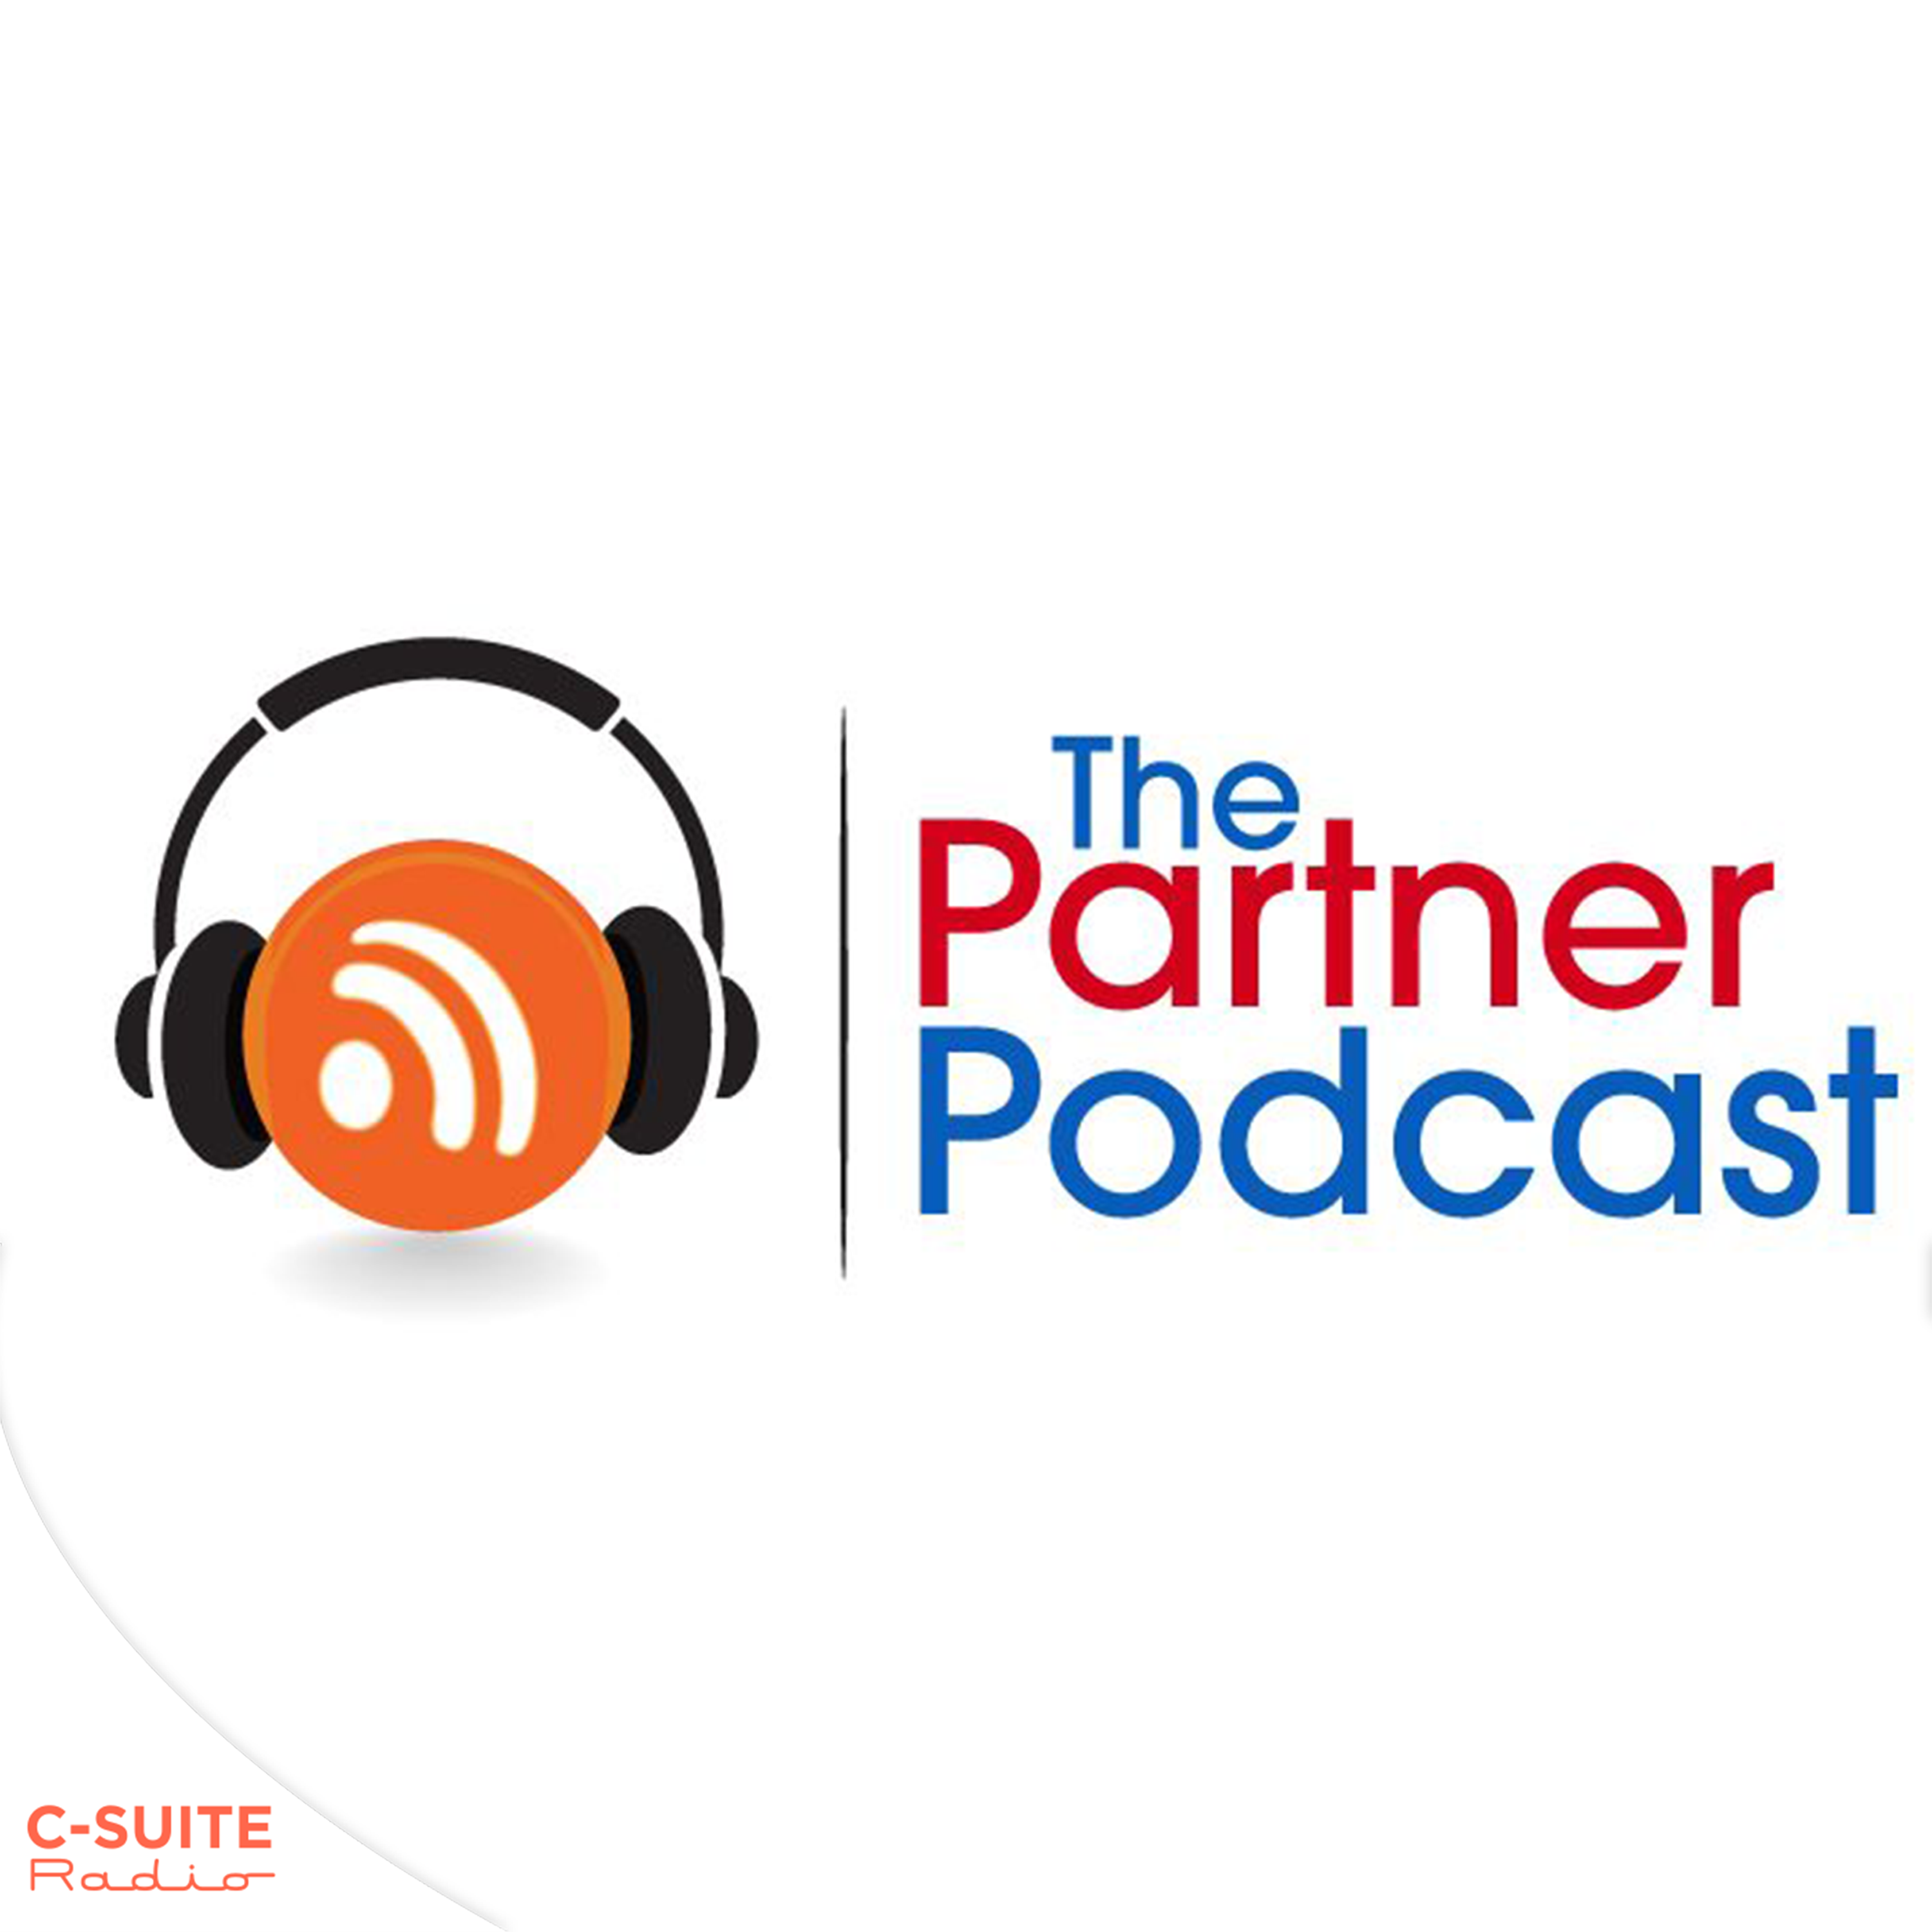 The Partner Podcast